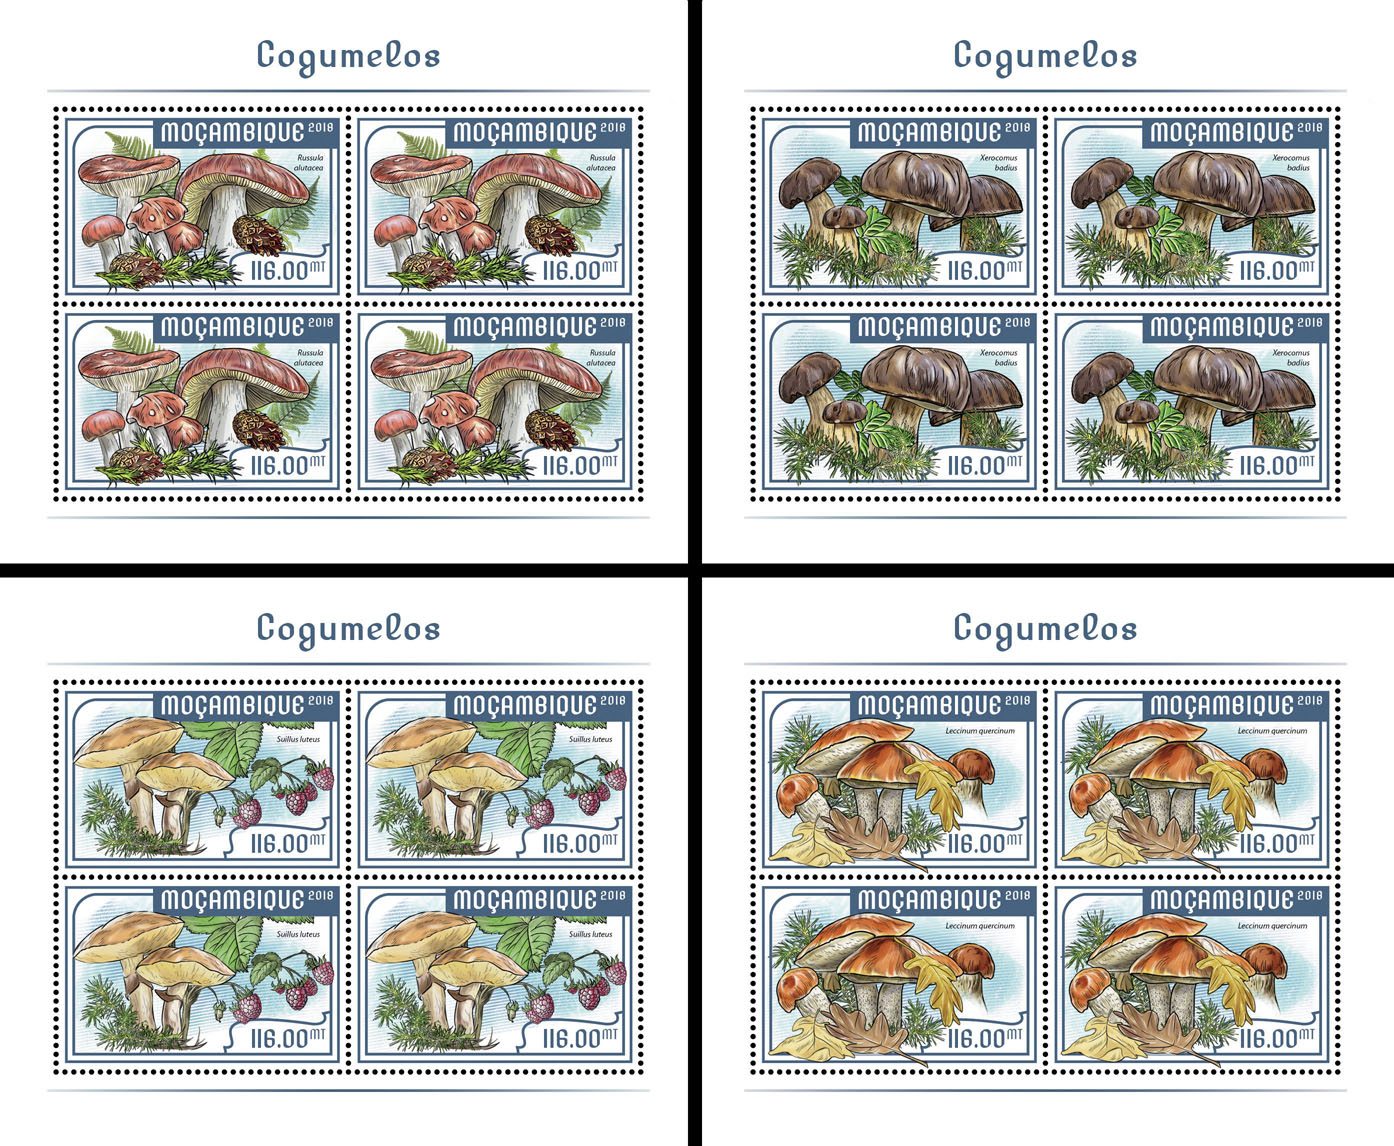 Mushrooms (4 sets of 4 stamps) - Issue of Mozambique postage Stamps